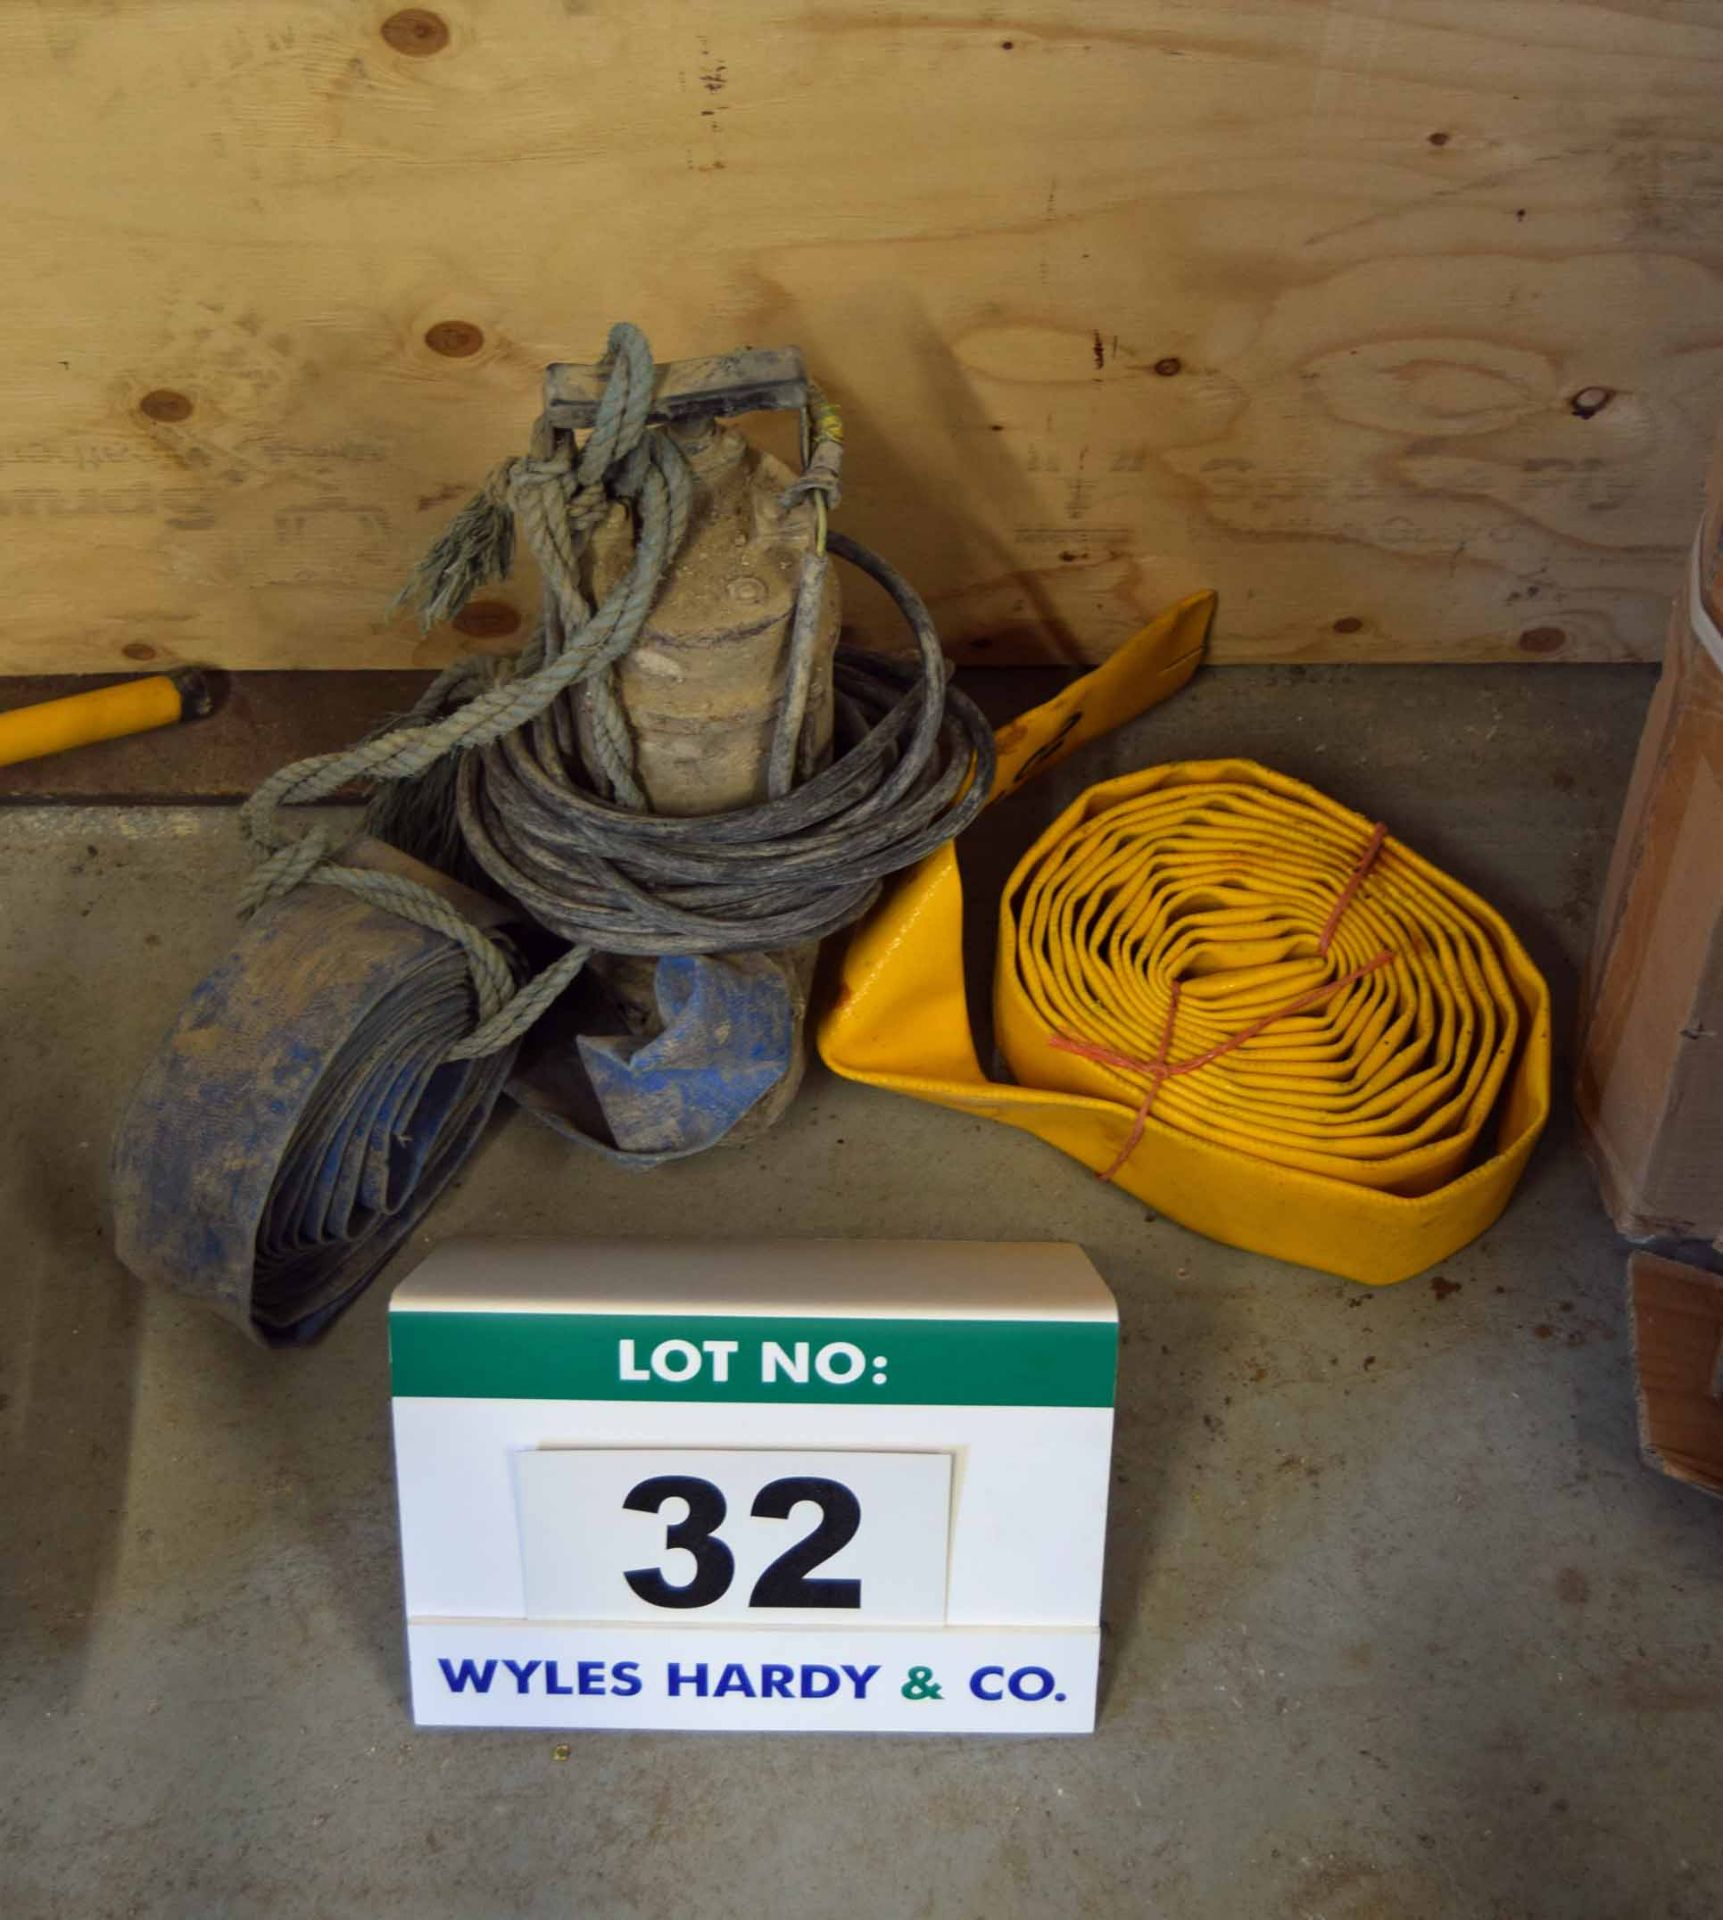 Lot 32 - A 110V Submersible Pump with Two Hoses